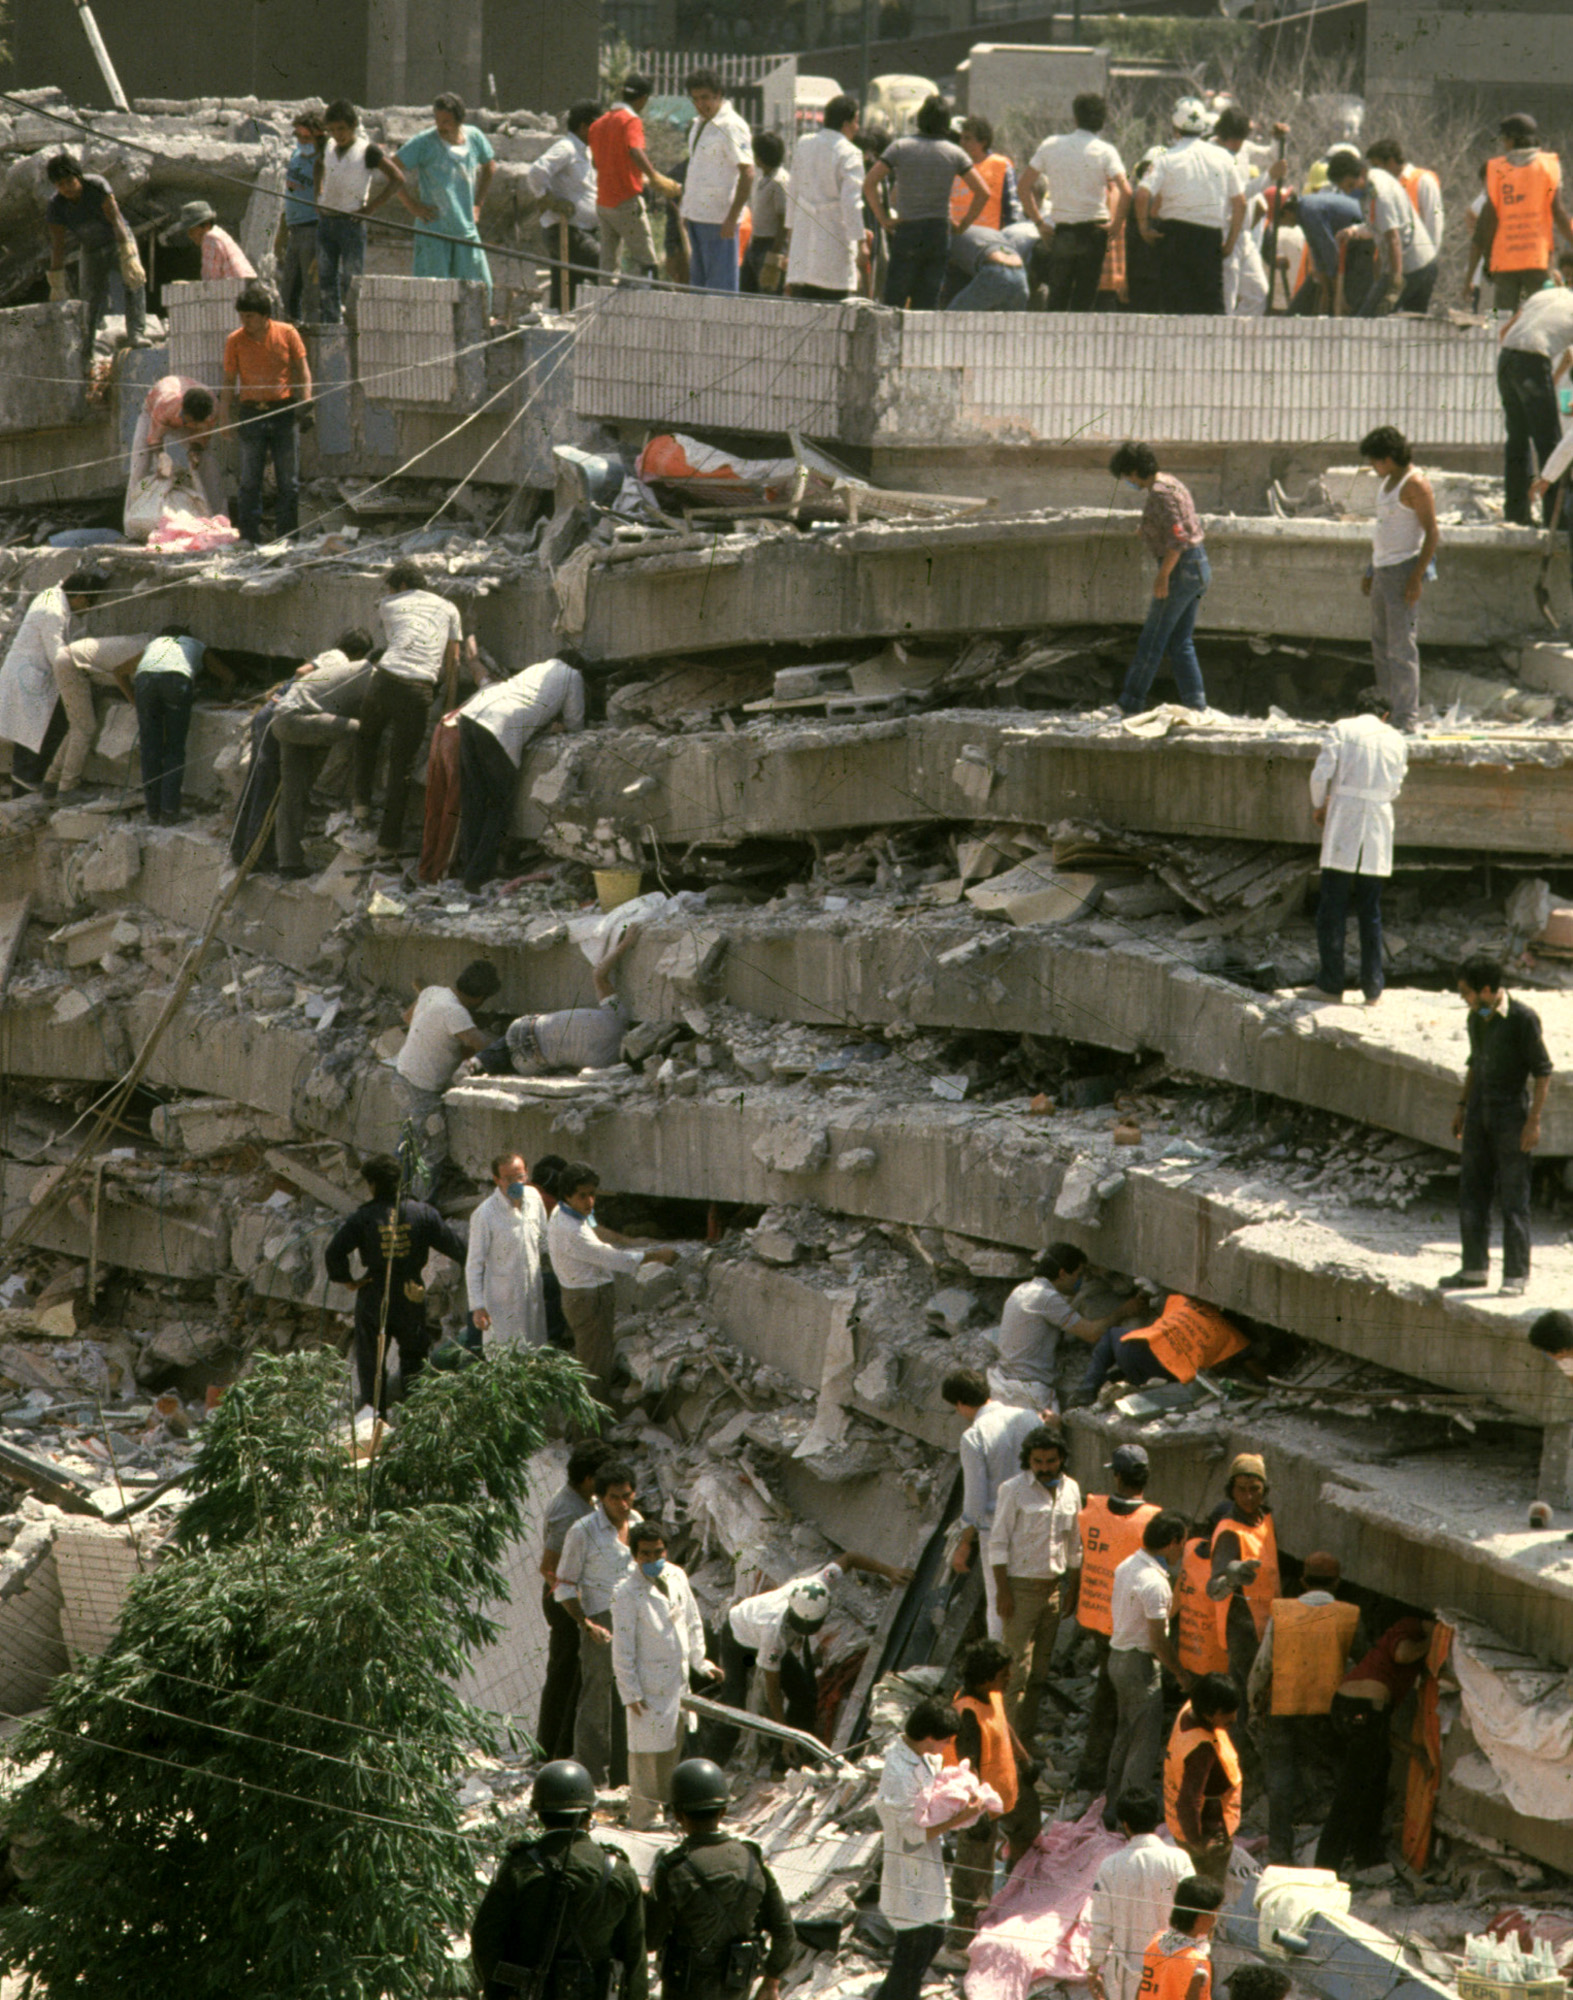 Rescue workers and citizens search for survivors inside the Hospital Juarez on Sept. 20, 1985, in Mexico City. At least 13 babies were pulled to safety by volunteers from two collapsed hospitals. In Hurricane Katrina's destruction, many here see the specter of the earthquake that struck 20 years ago, toppling buildings and shaking people's faith in authorities. (KEYSTONE/AP Photo/Jesus Villaseca) ** ONE TIME USE ONLY. . . MANDATORY CREDIT **